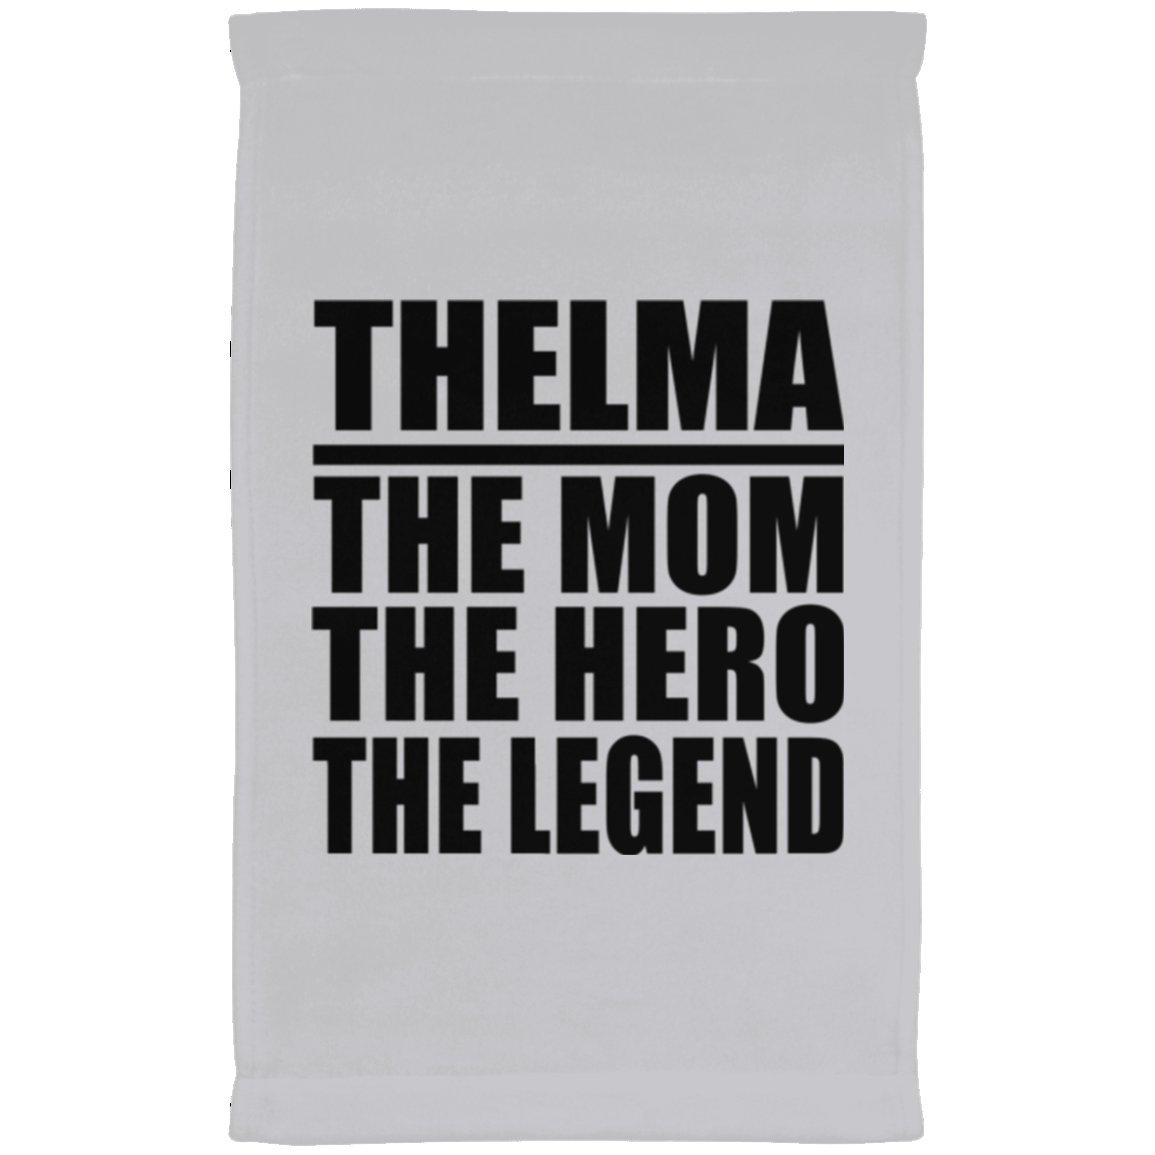 Designsify Mom Towel, Thelma The Mom The Hero The Legend - Kitchen Towel, Microfiber Velour Towel, Best Gift with Her Name for Mother, Mum, Parent, Wife from Daughter, Son, Kid, Child, Husband